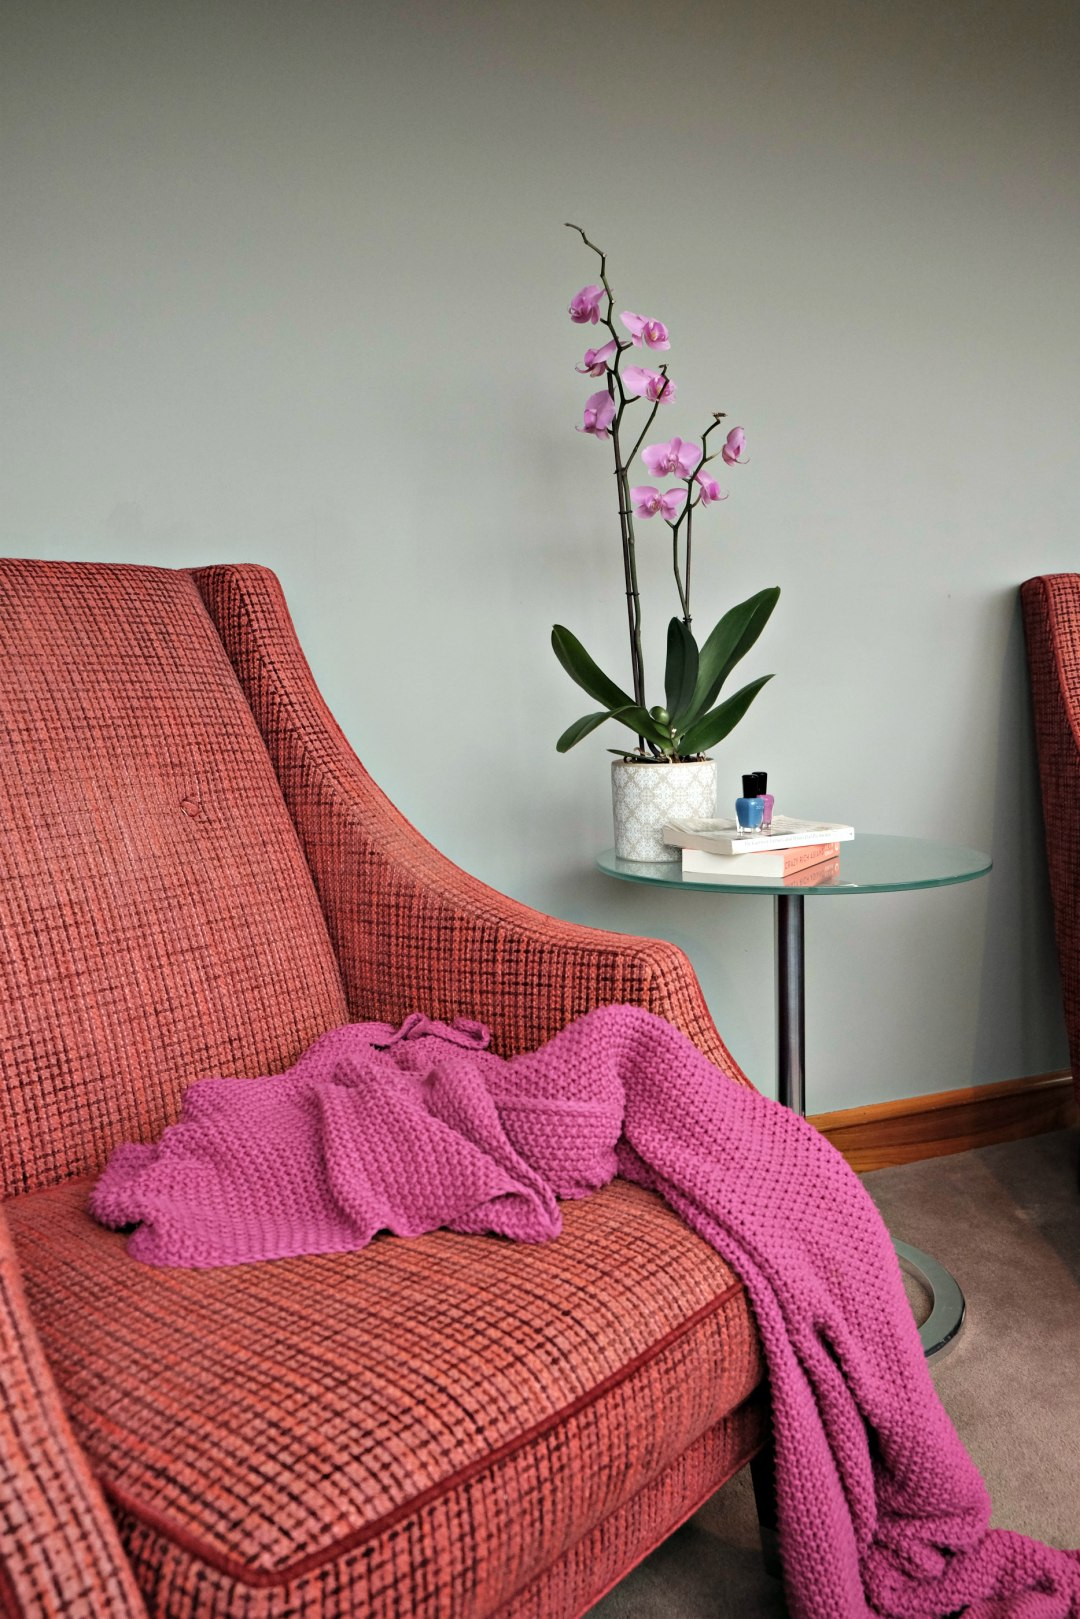 This image is of the red armchair with the purple blanket draped over it.  I nthe background are books on a side table.  There is a stack of books for my spring reading list.